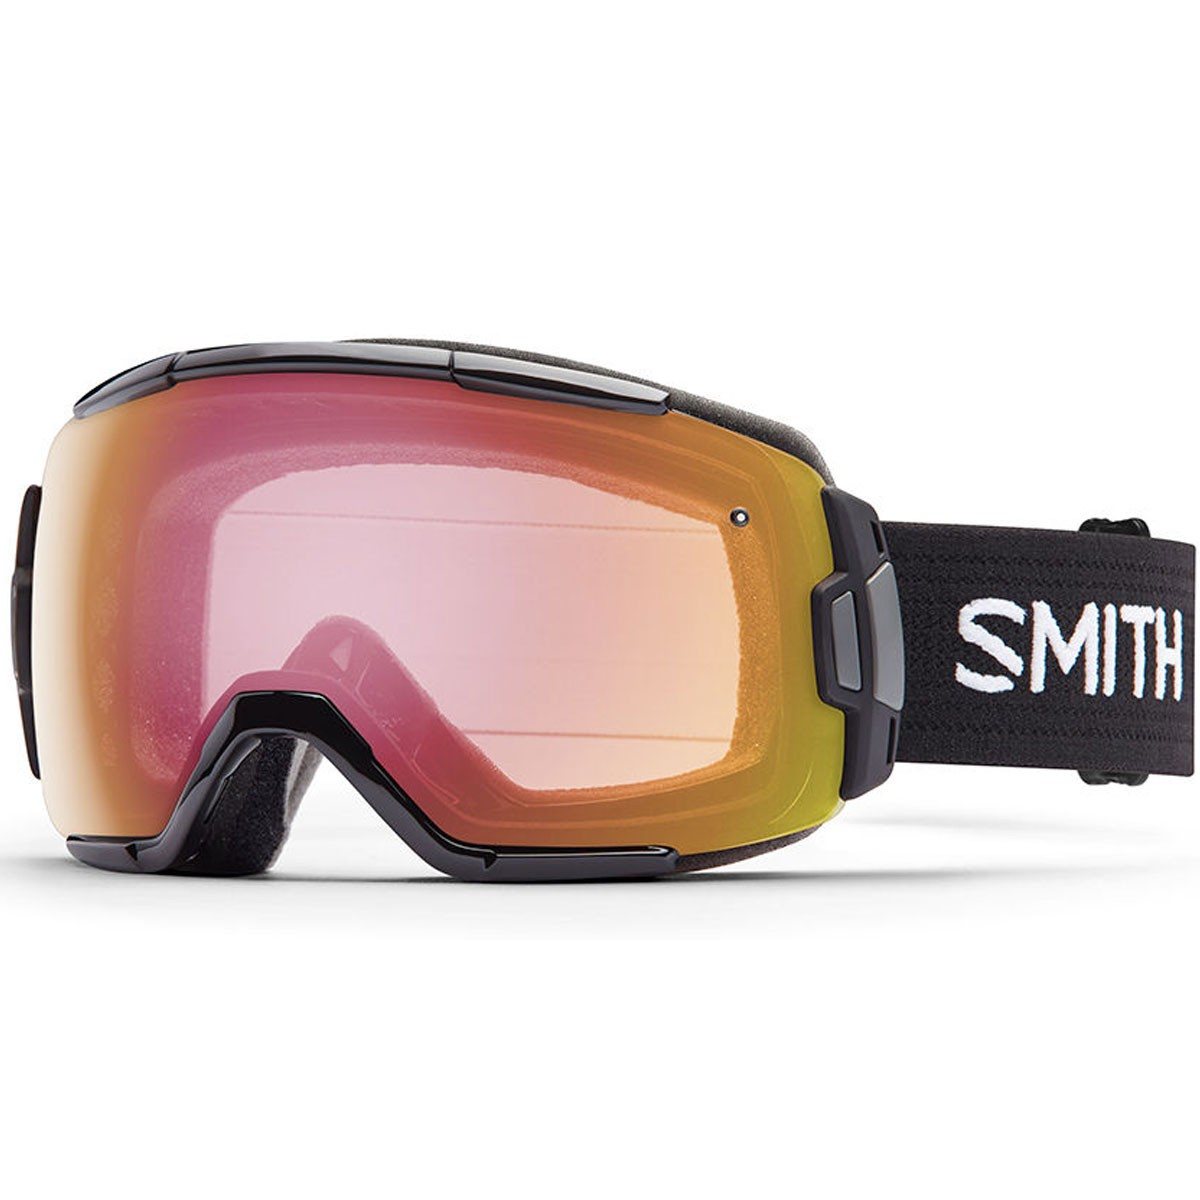 Smith Vice Snowboard Goggles - Black with Red Sensor Mirror